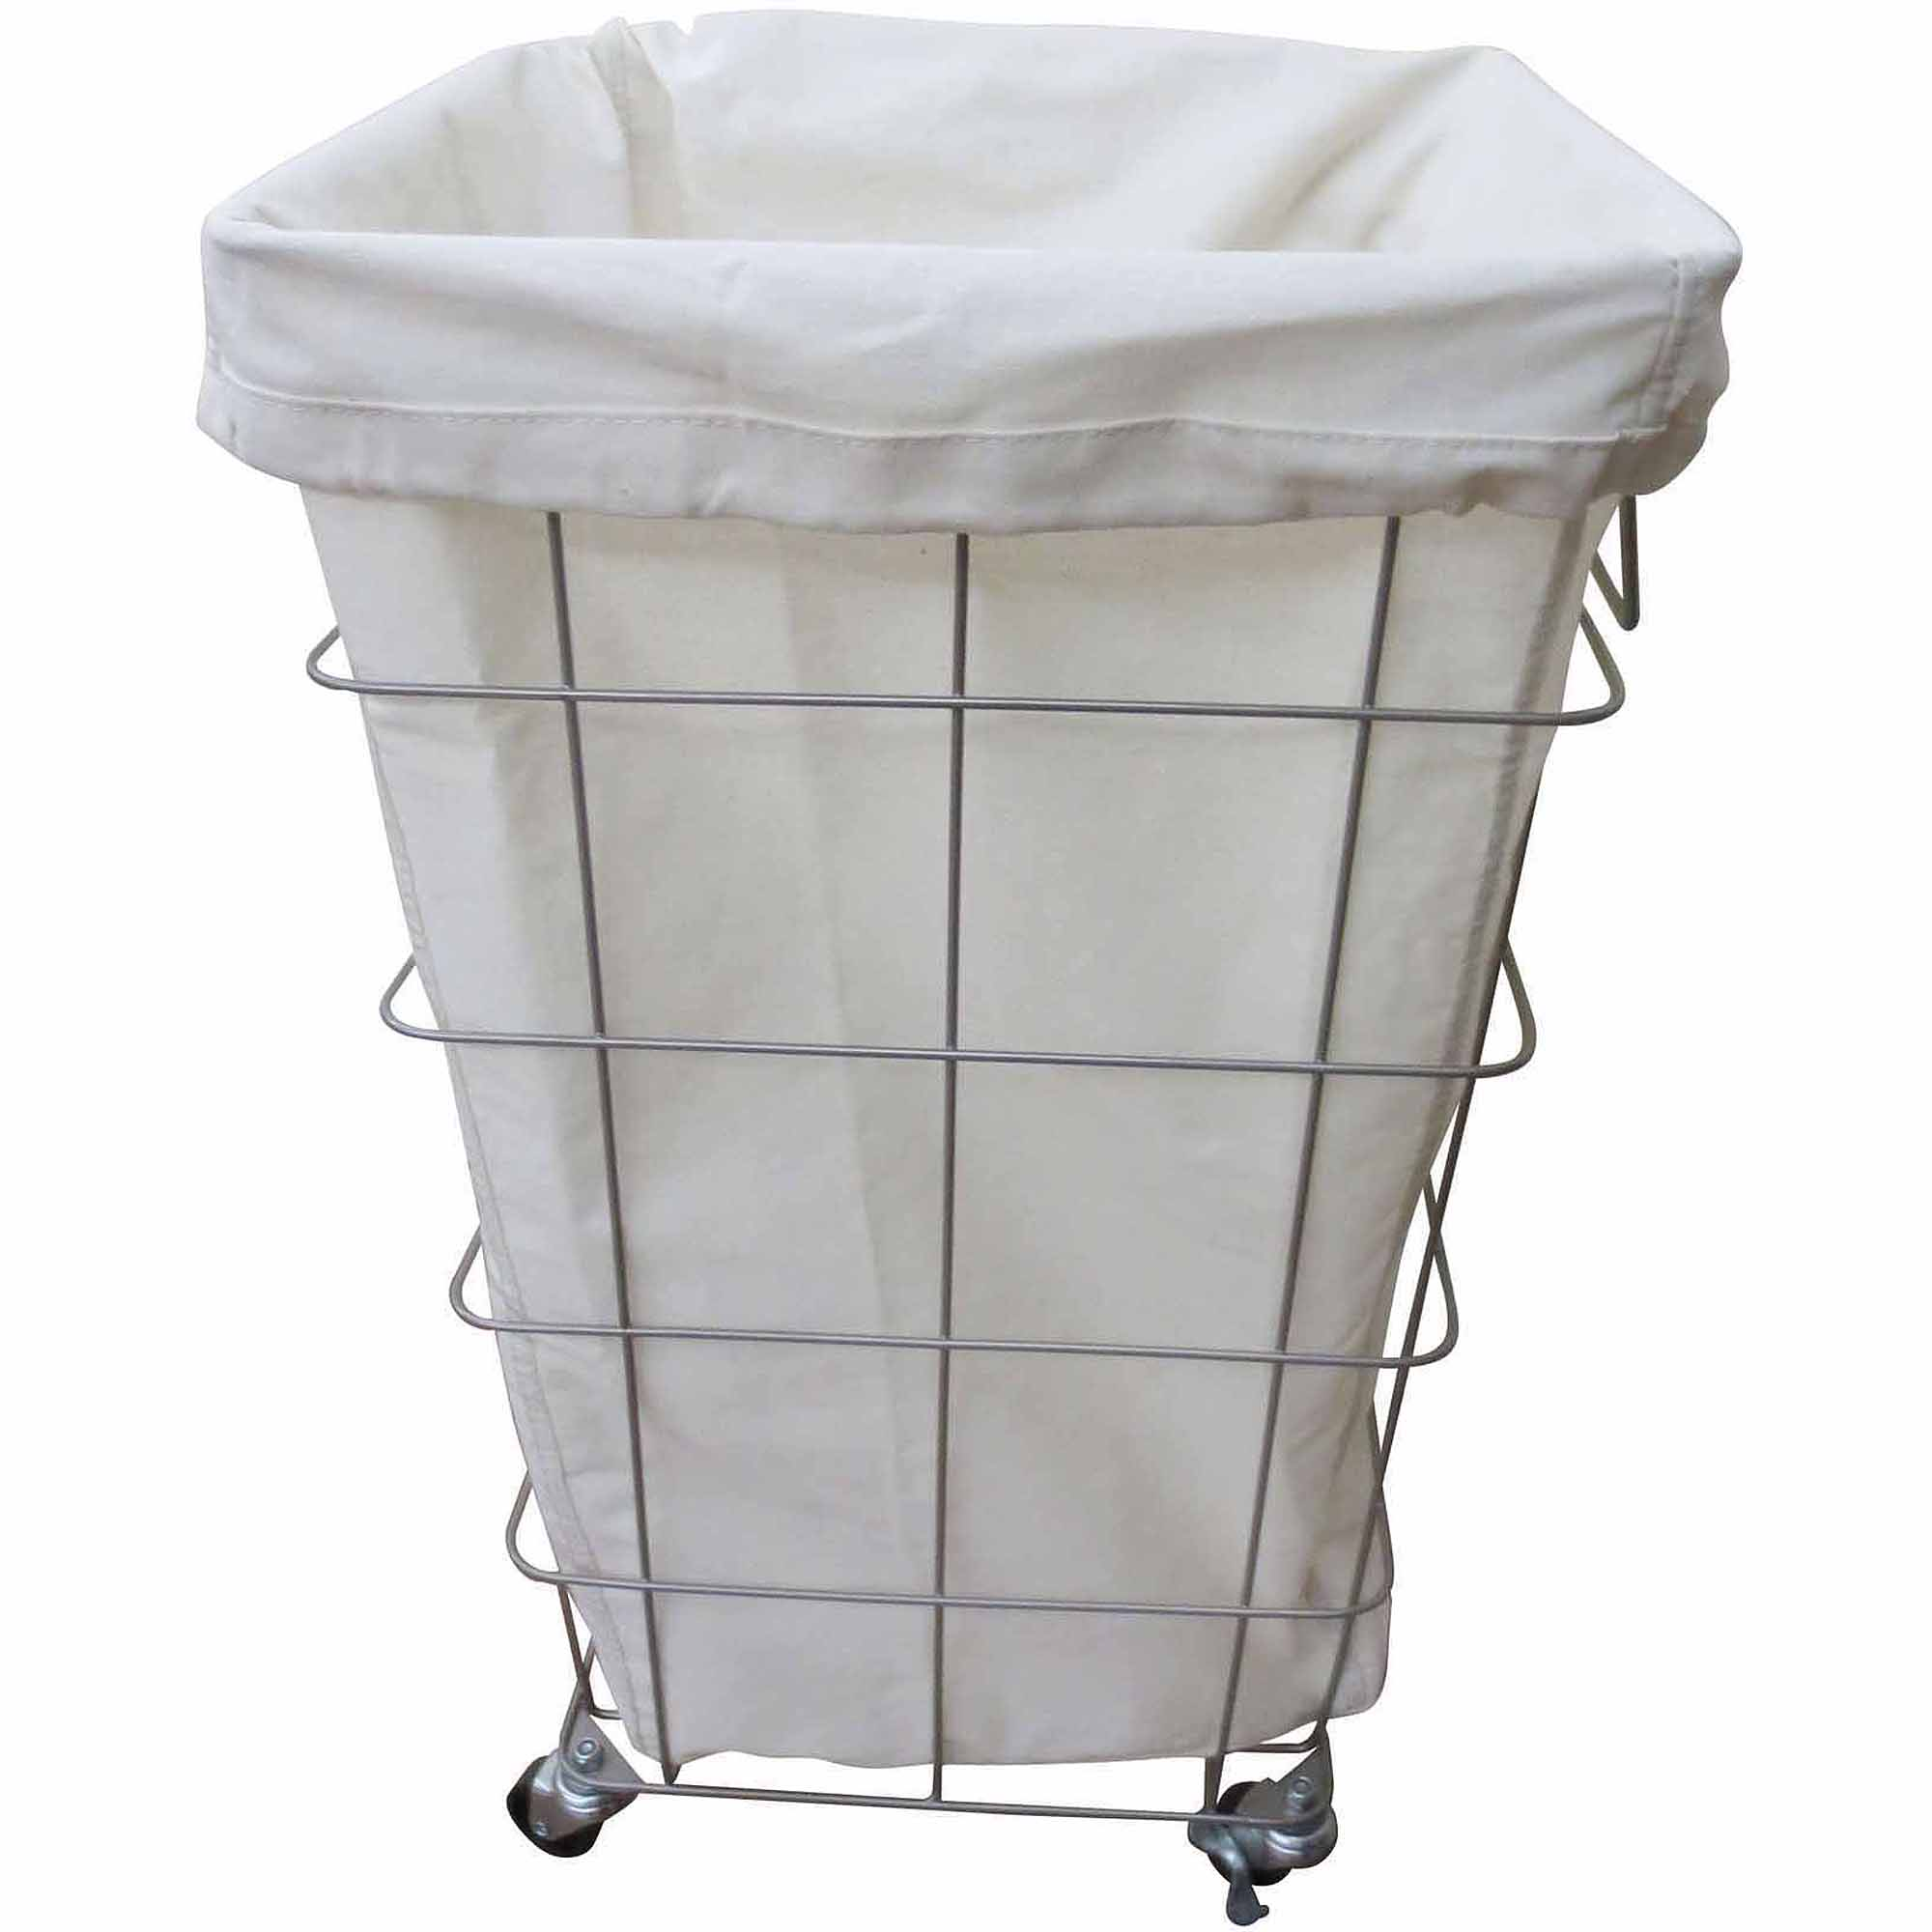 Laundry Hamper With Wheels Part - 20: Better Homes And Gardens Square Caged Hamper, Nickel/White